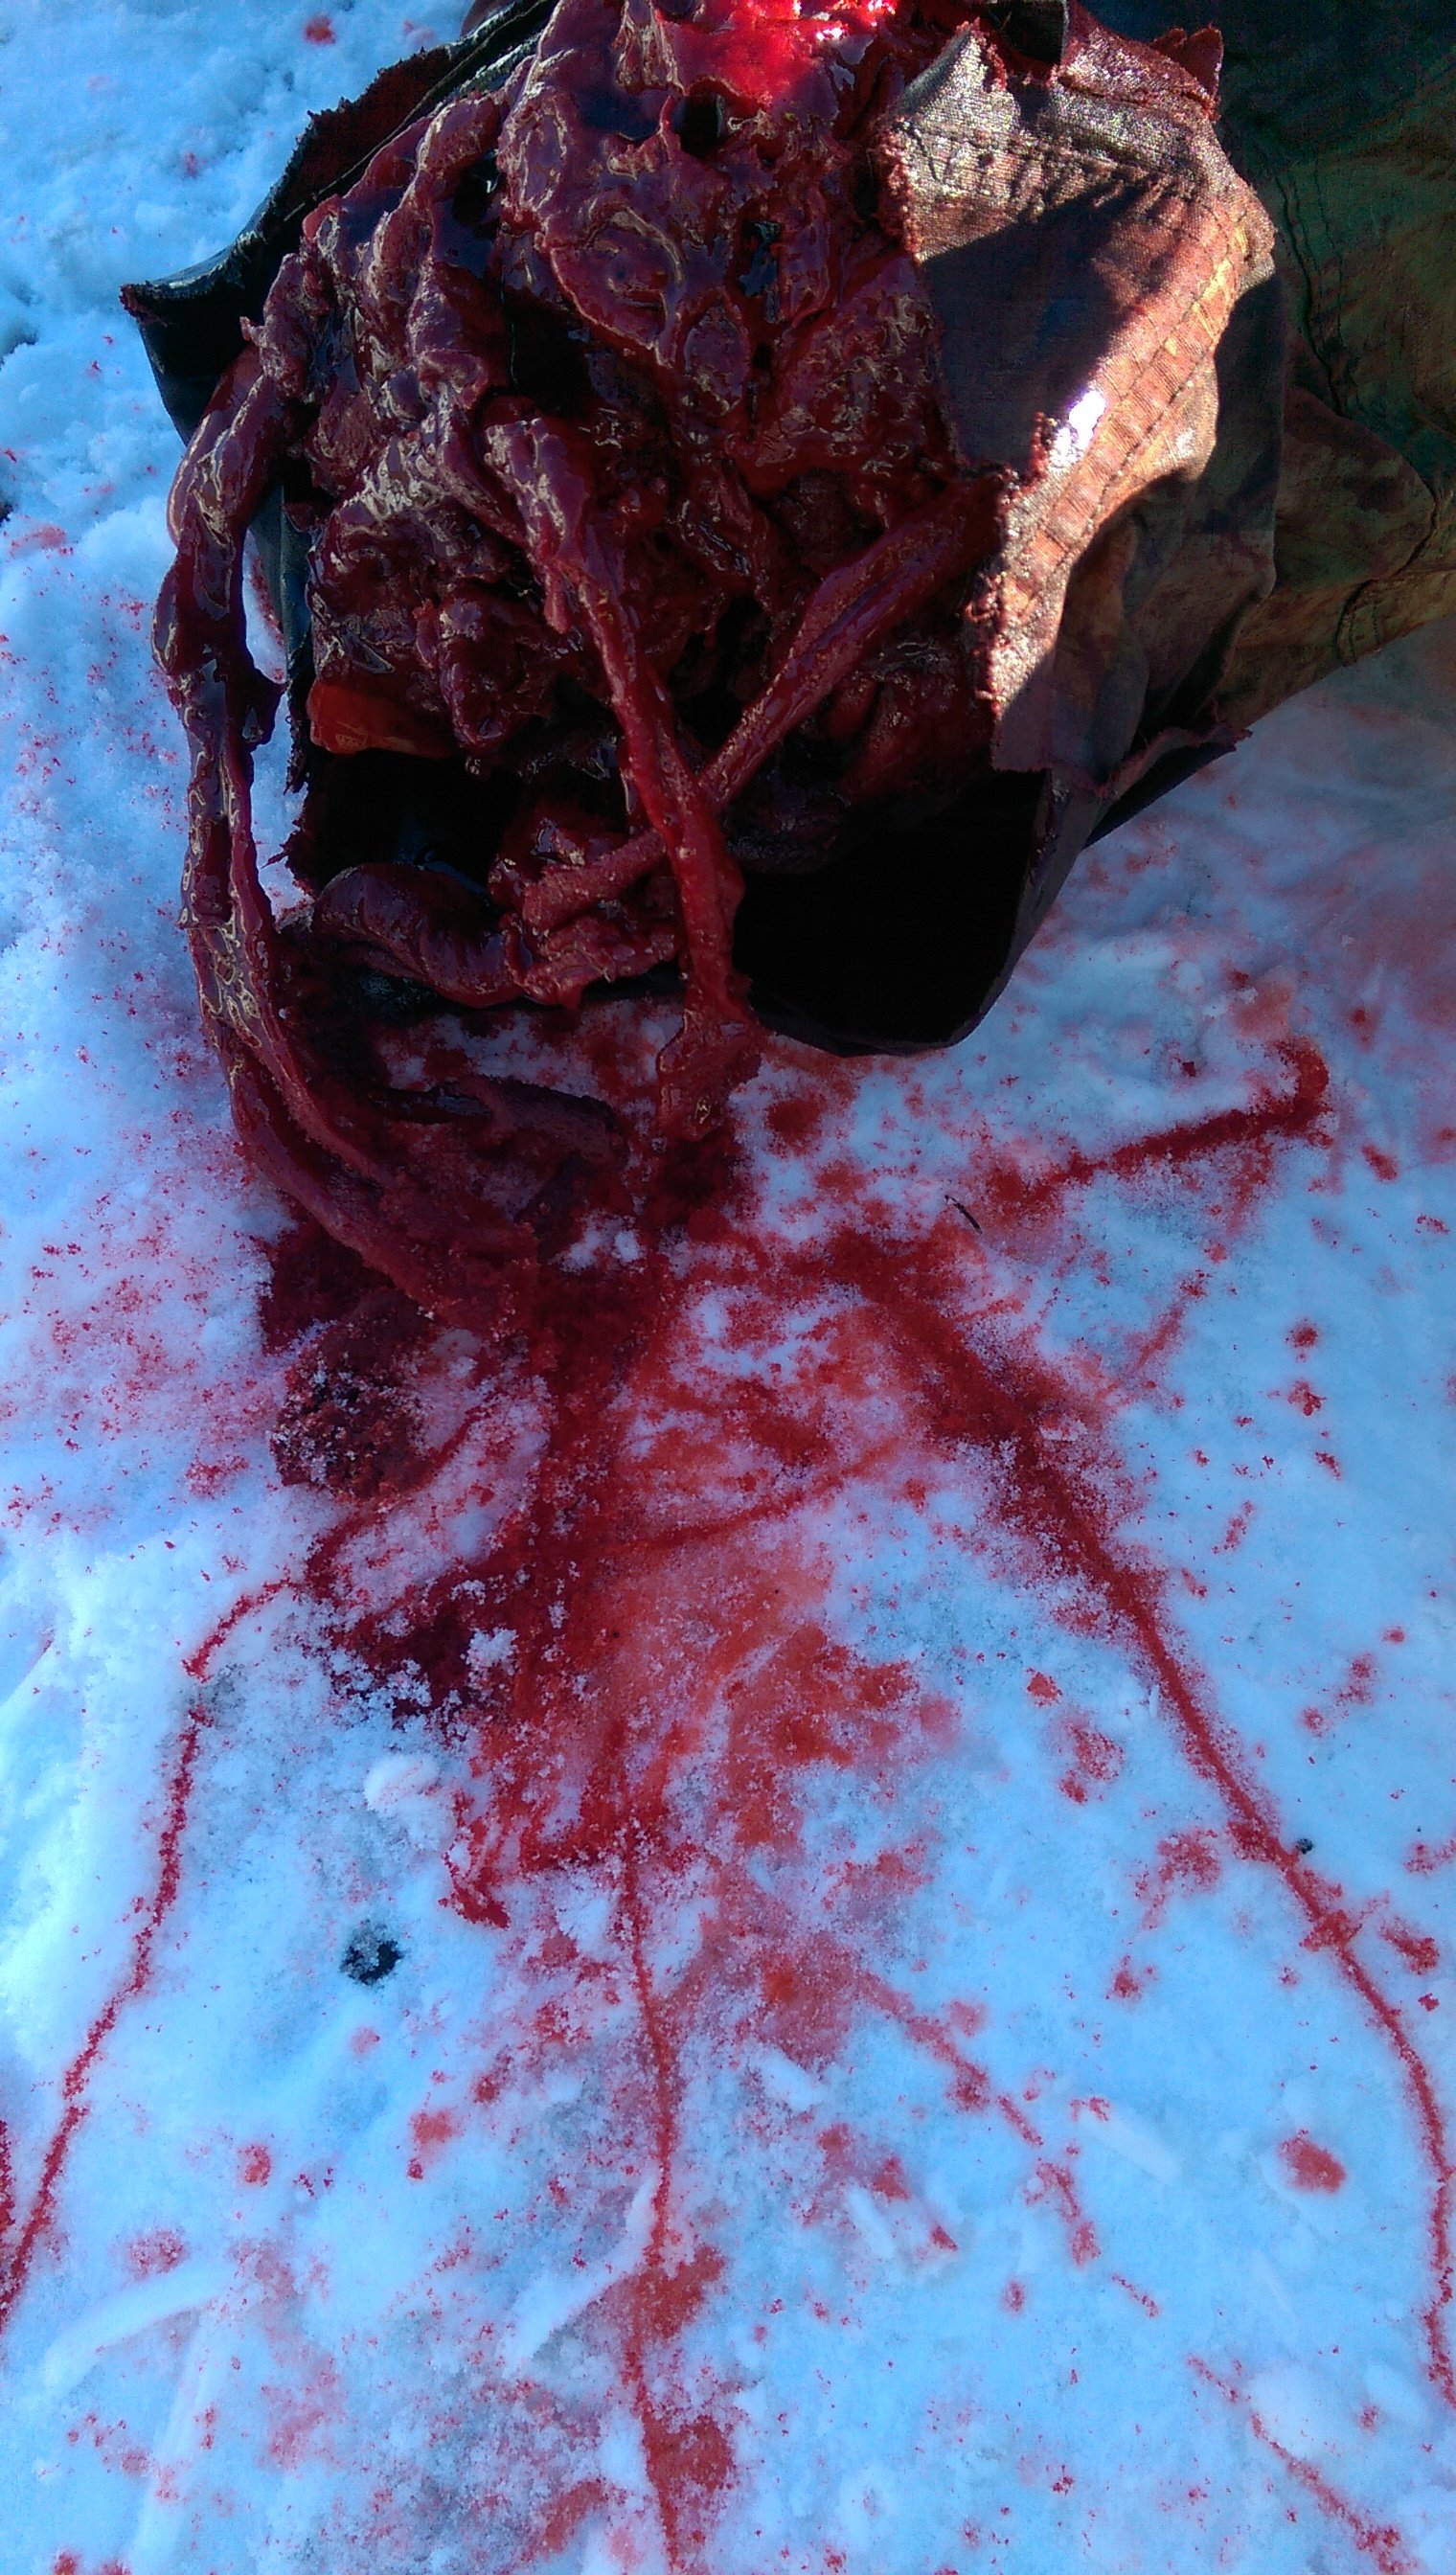 special effects of cuts and blood